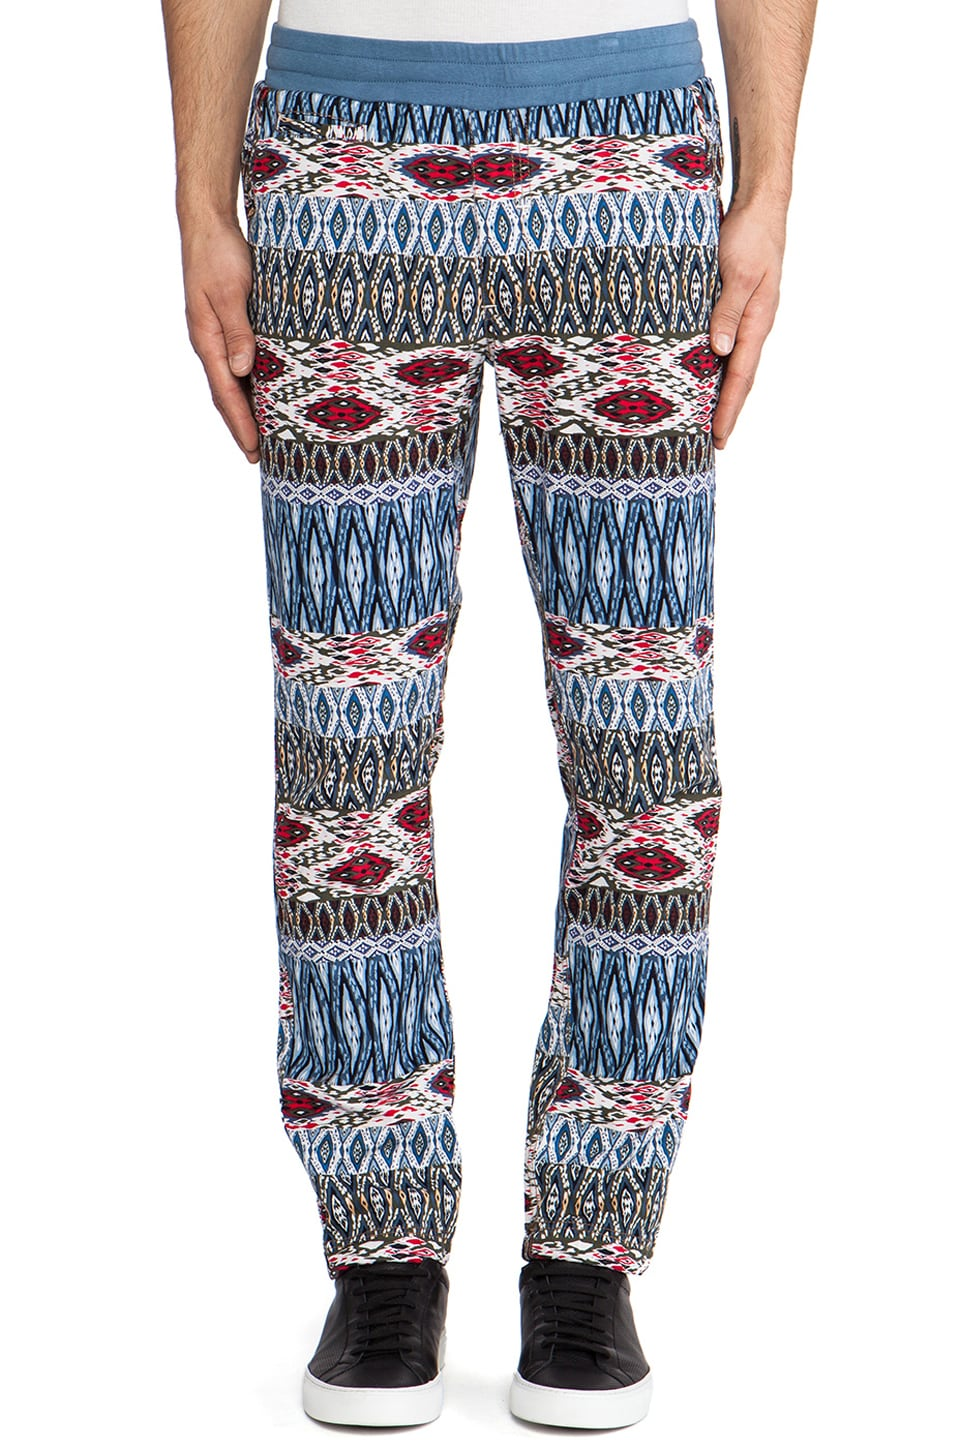 Staple Asante Cinch Pant in Indigo